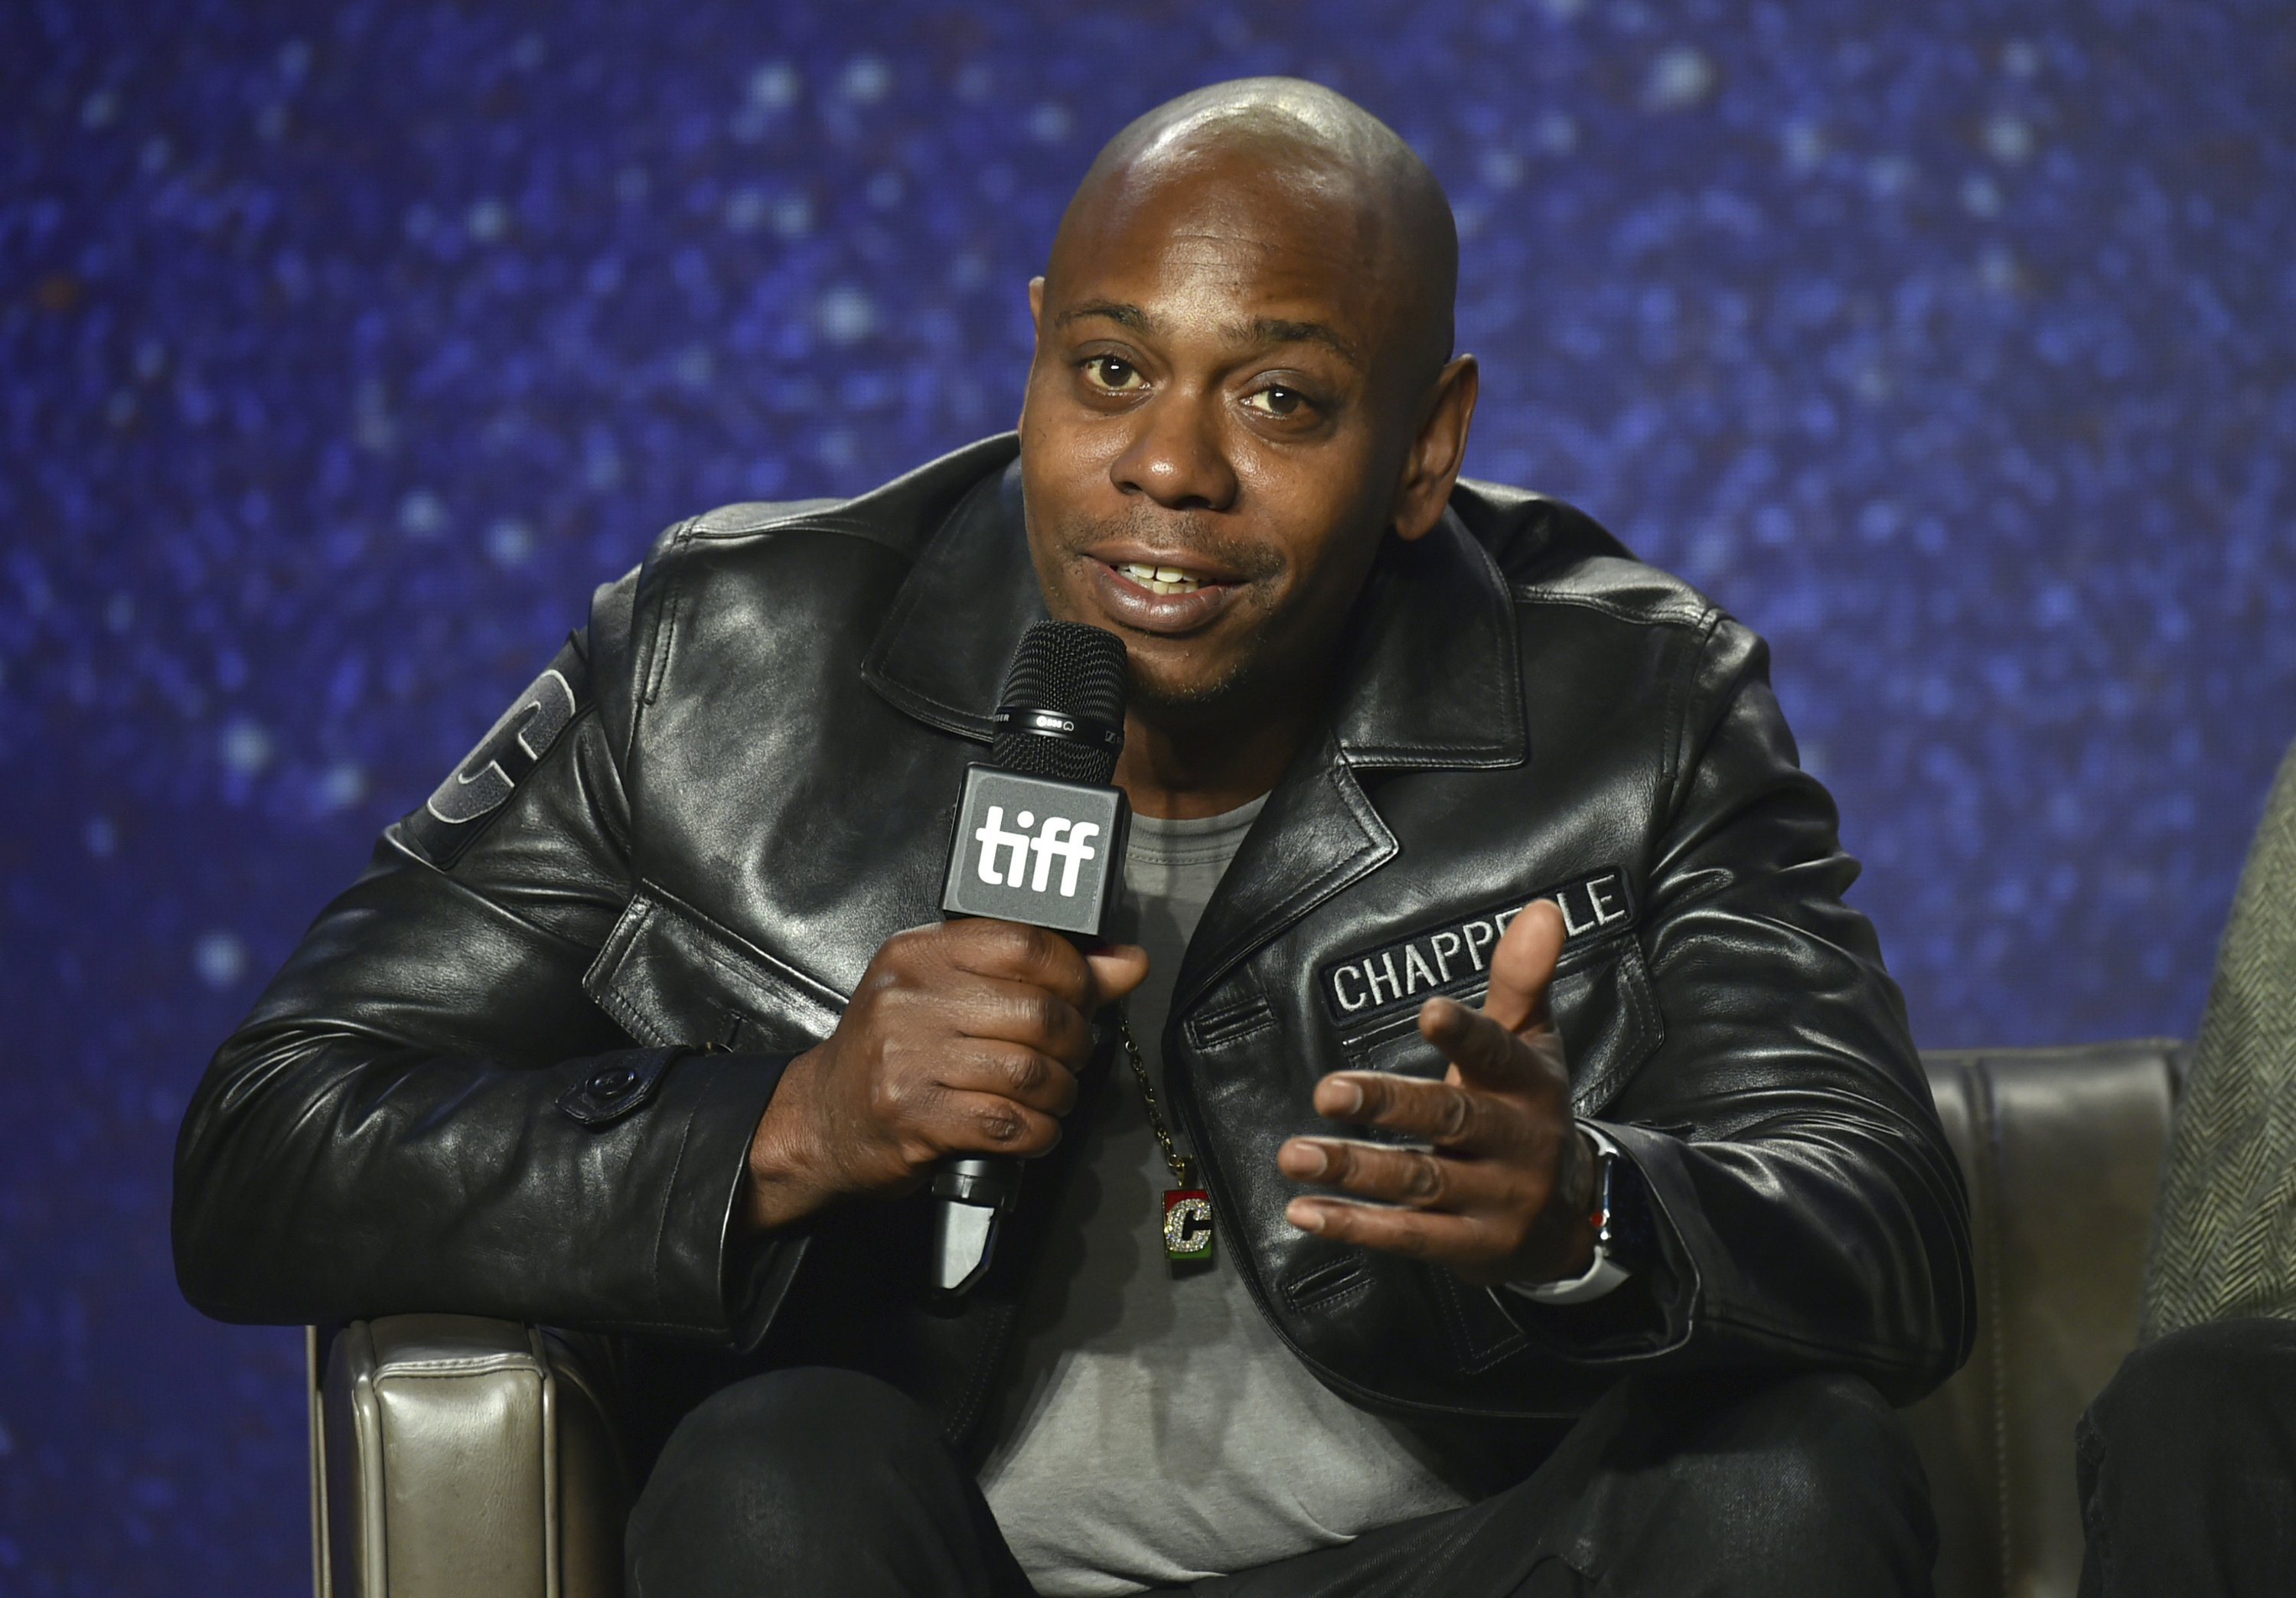 Boundary-pushing Dave Chappelle set to receive comedy award (Mark Twain prize for lifetime achievement in comedy)